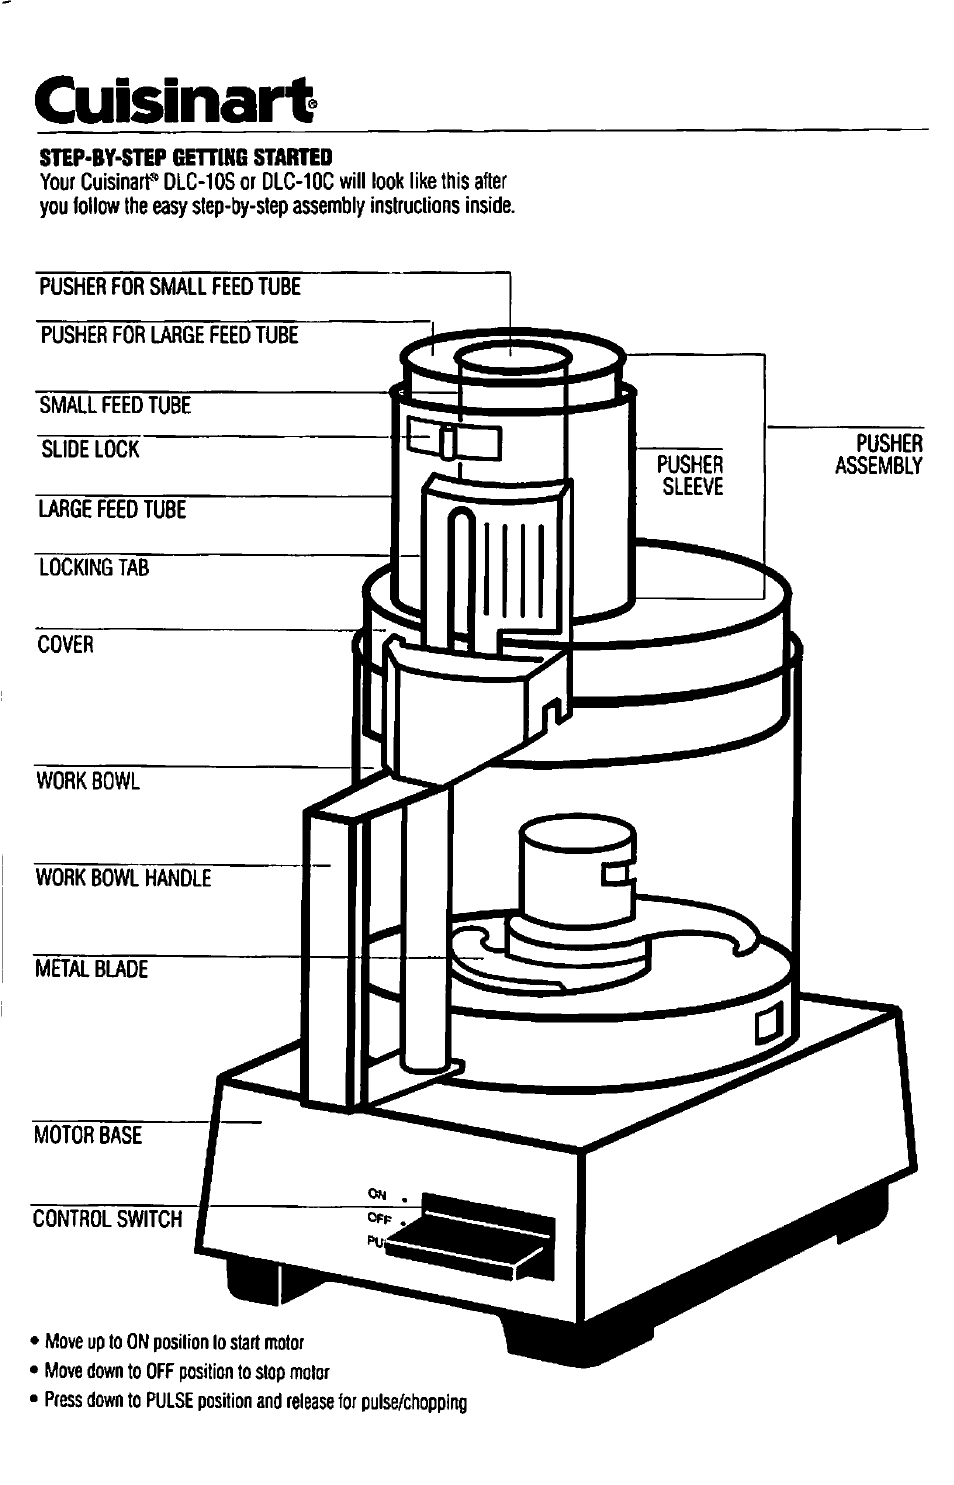 Cuisinart dlc-10c user manual | page 23 / 56 | also for: dlc-10s.